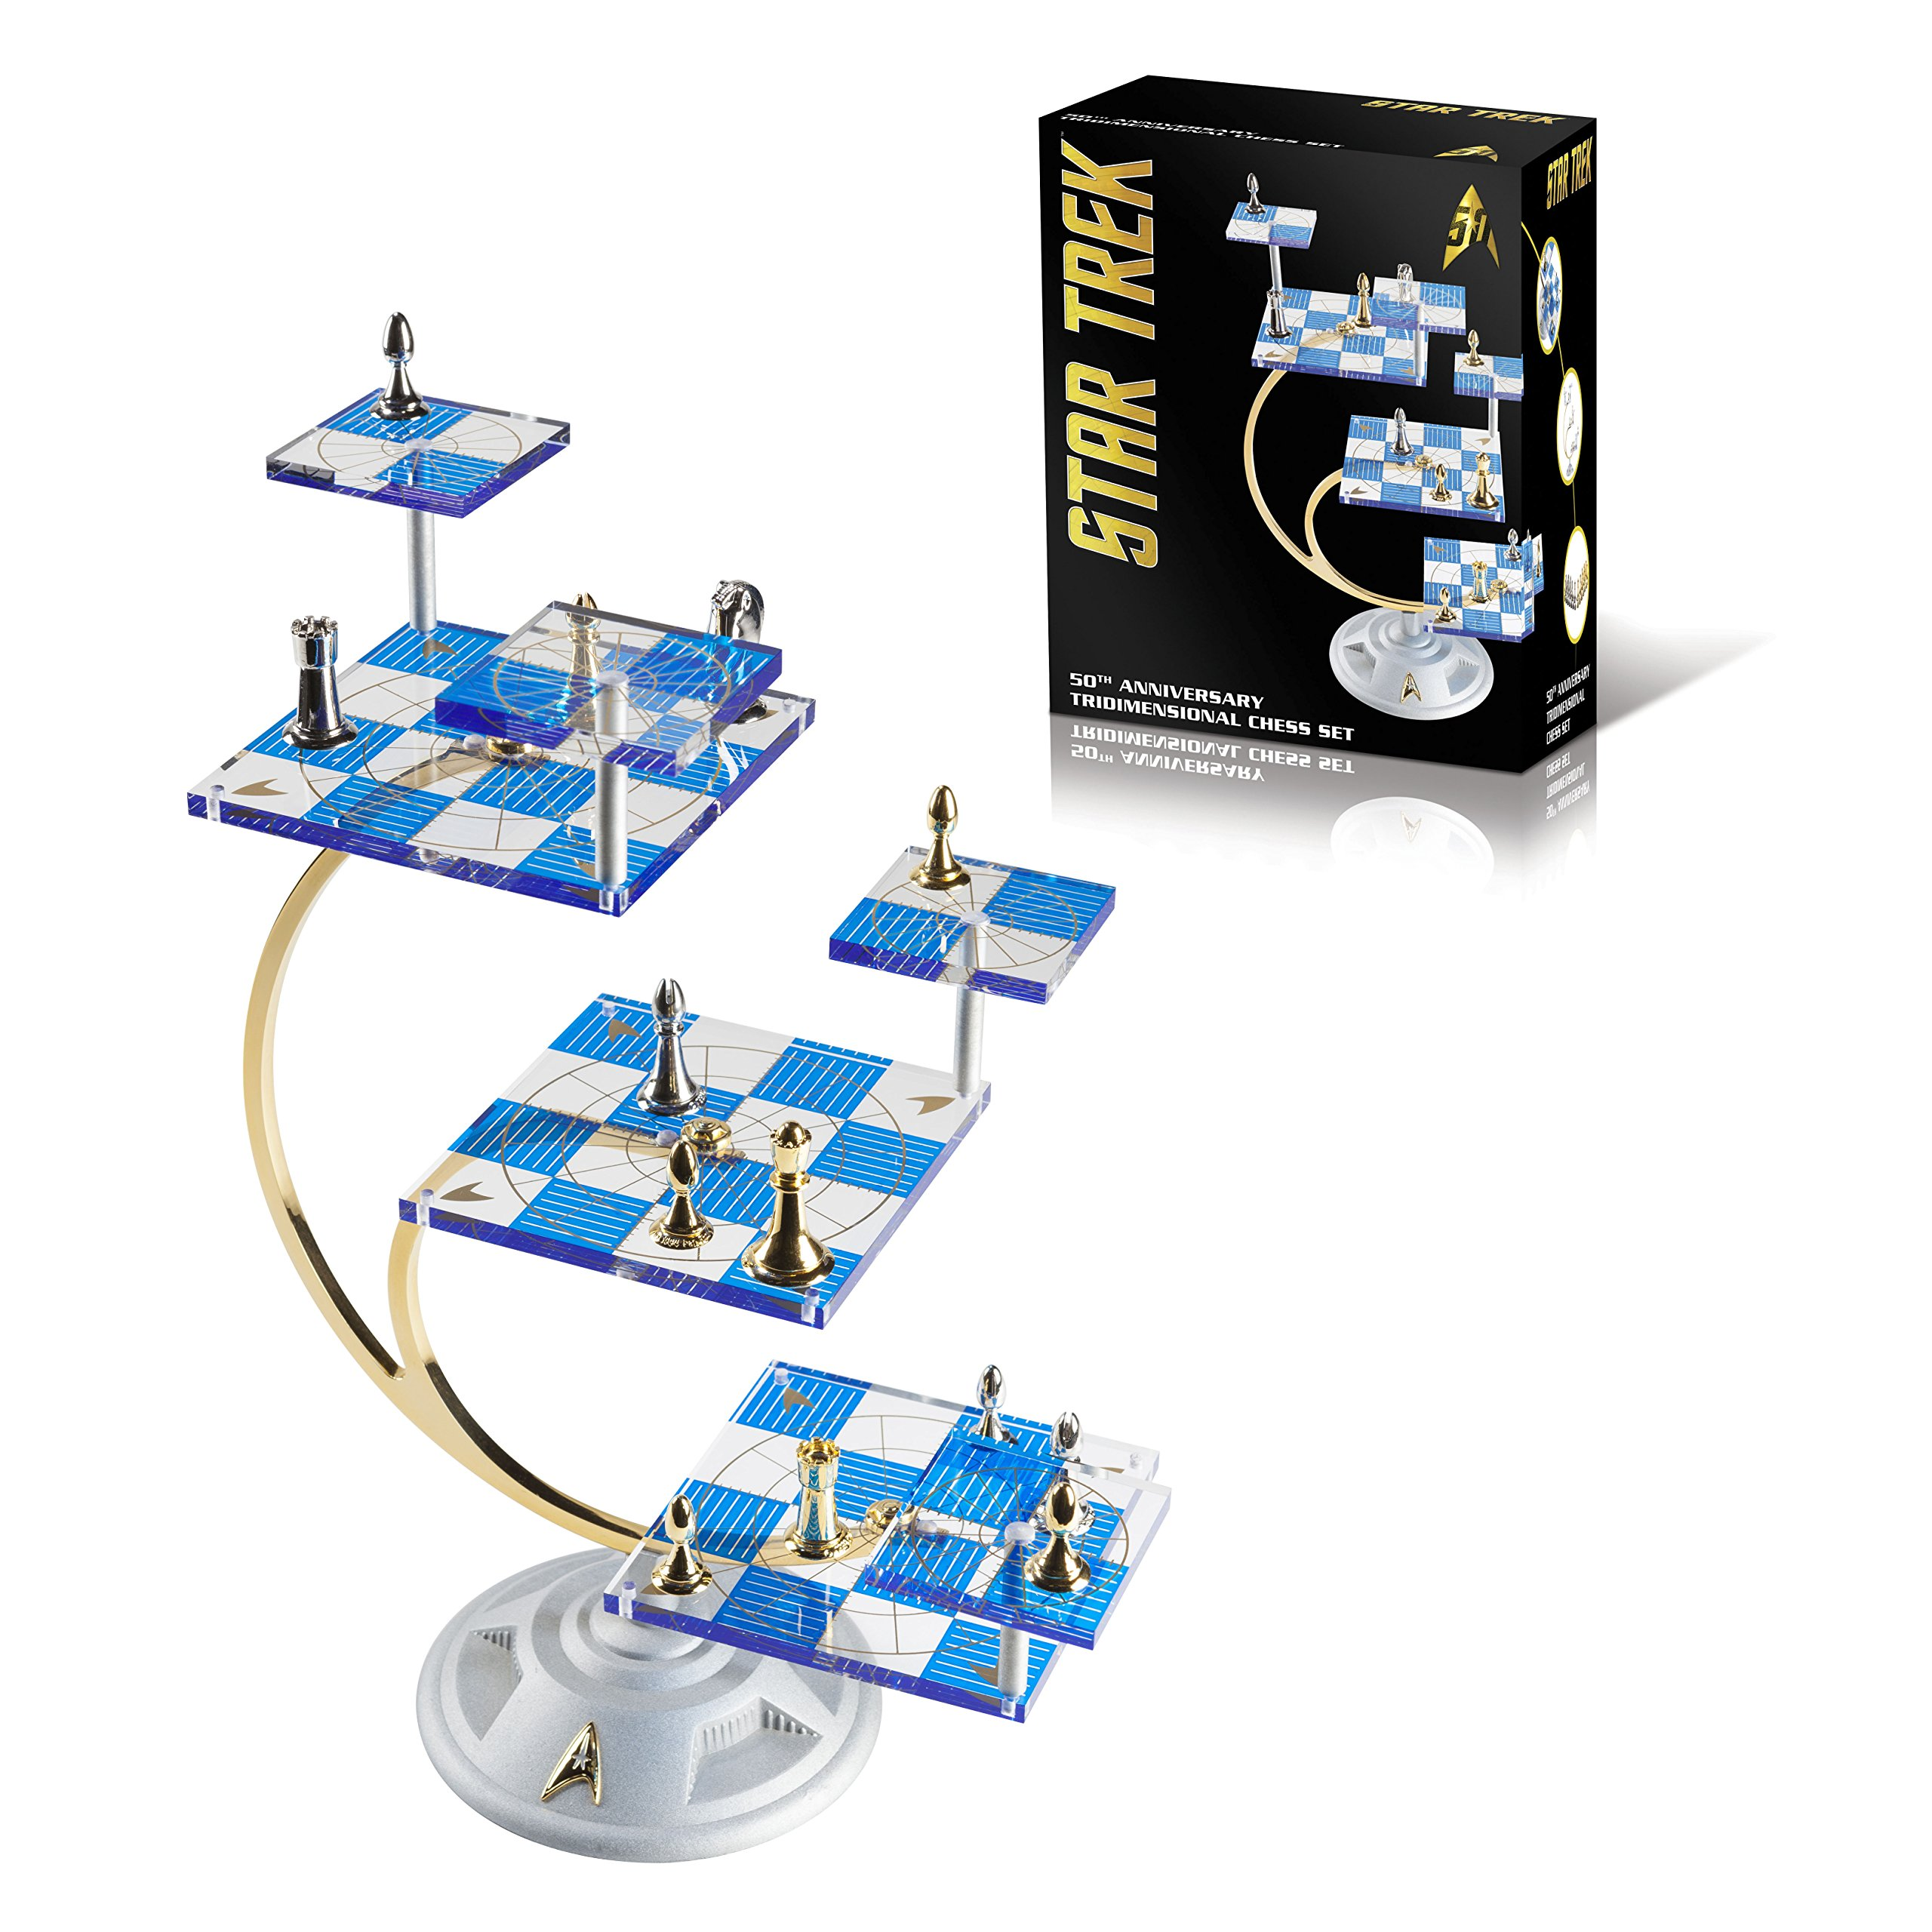 Franklin mint 39 s official 50th anniversary star trek tridimensional chess set ebay - Tri dimensional chess board ...